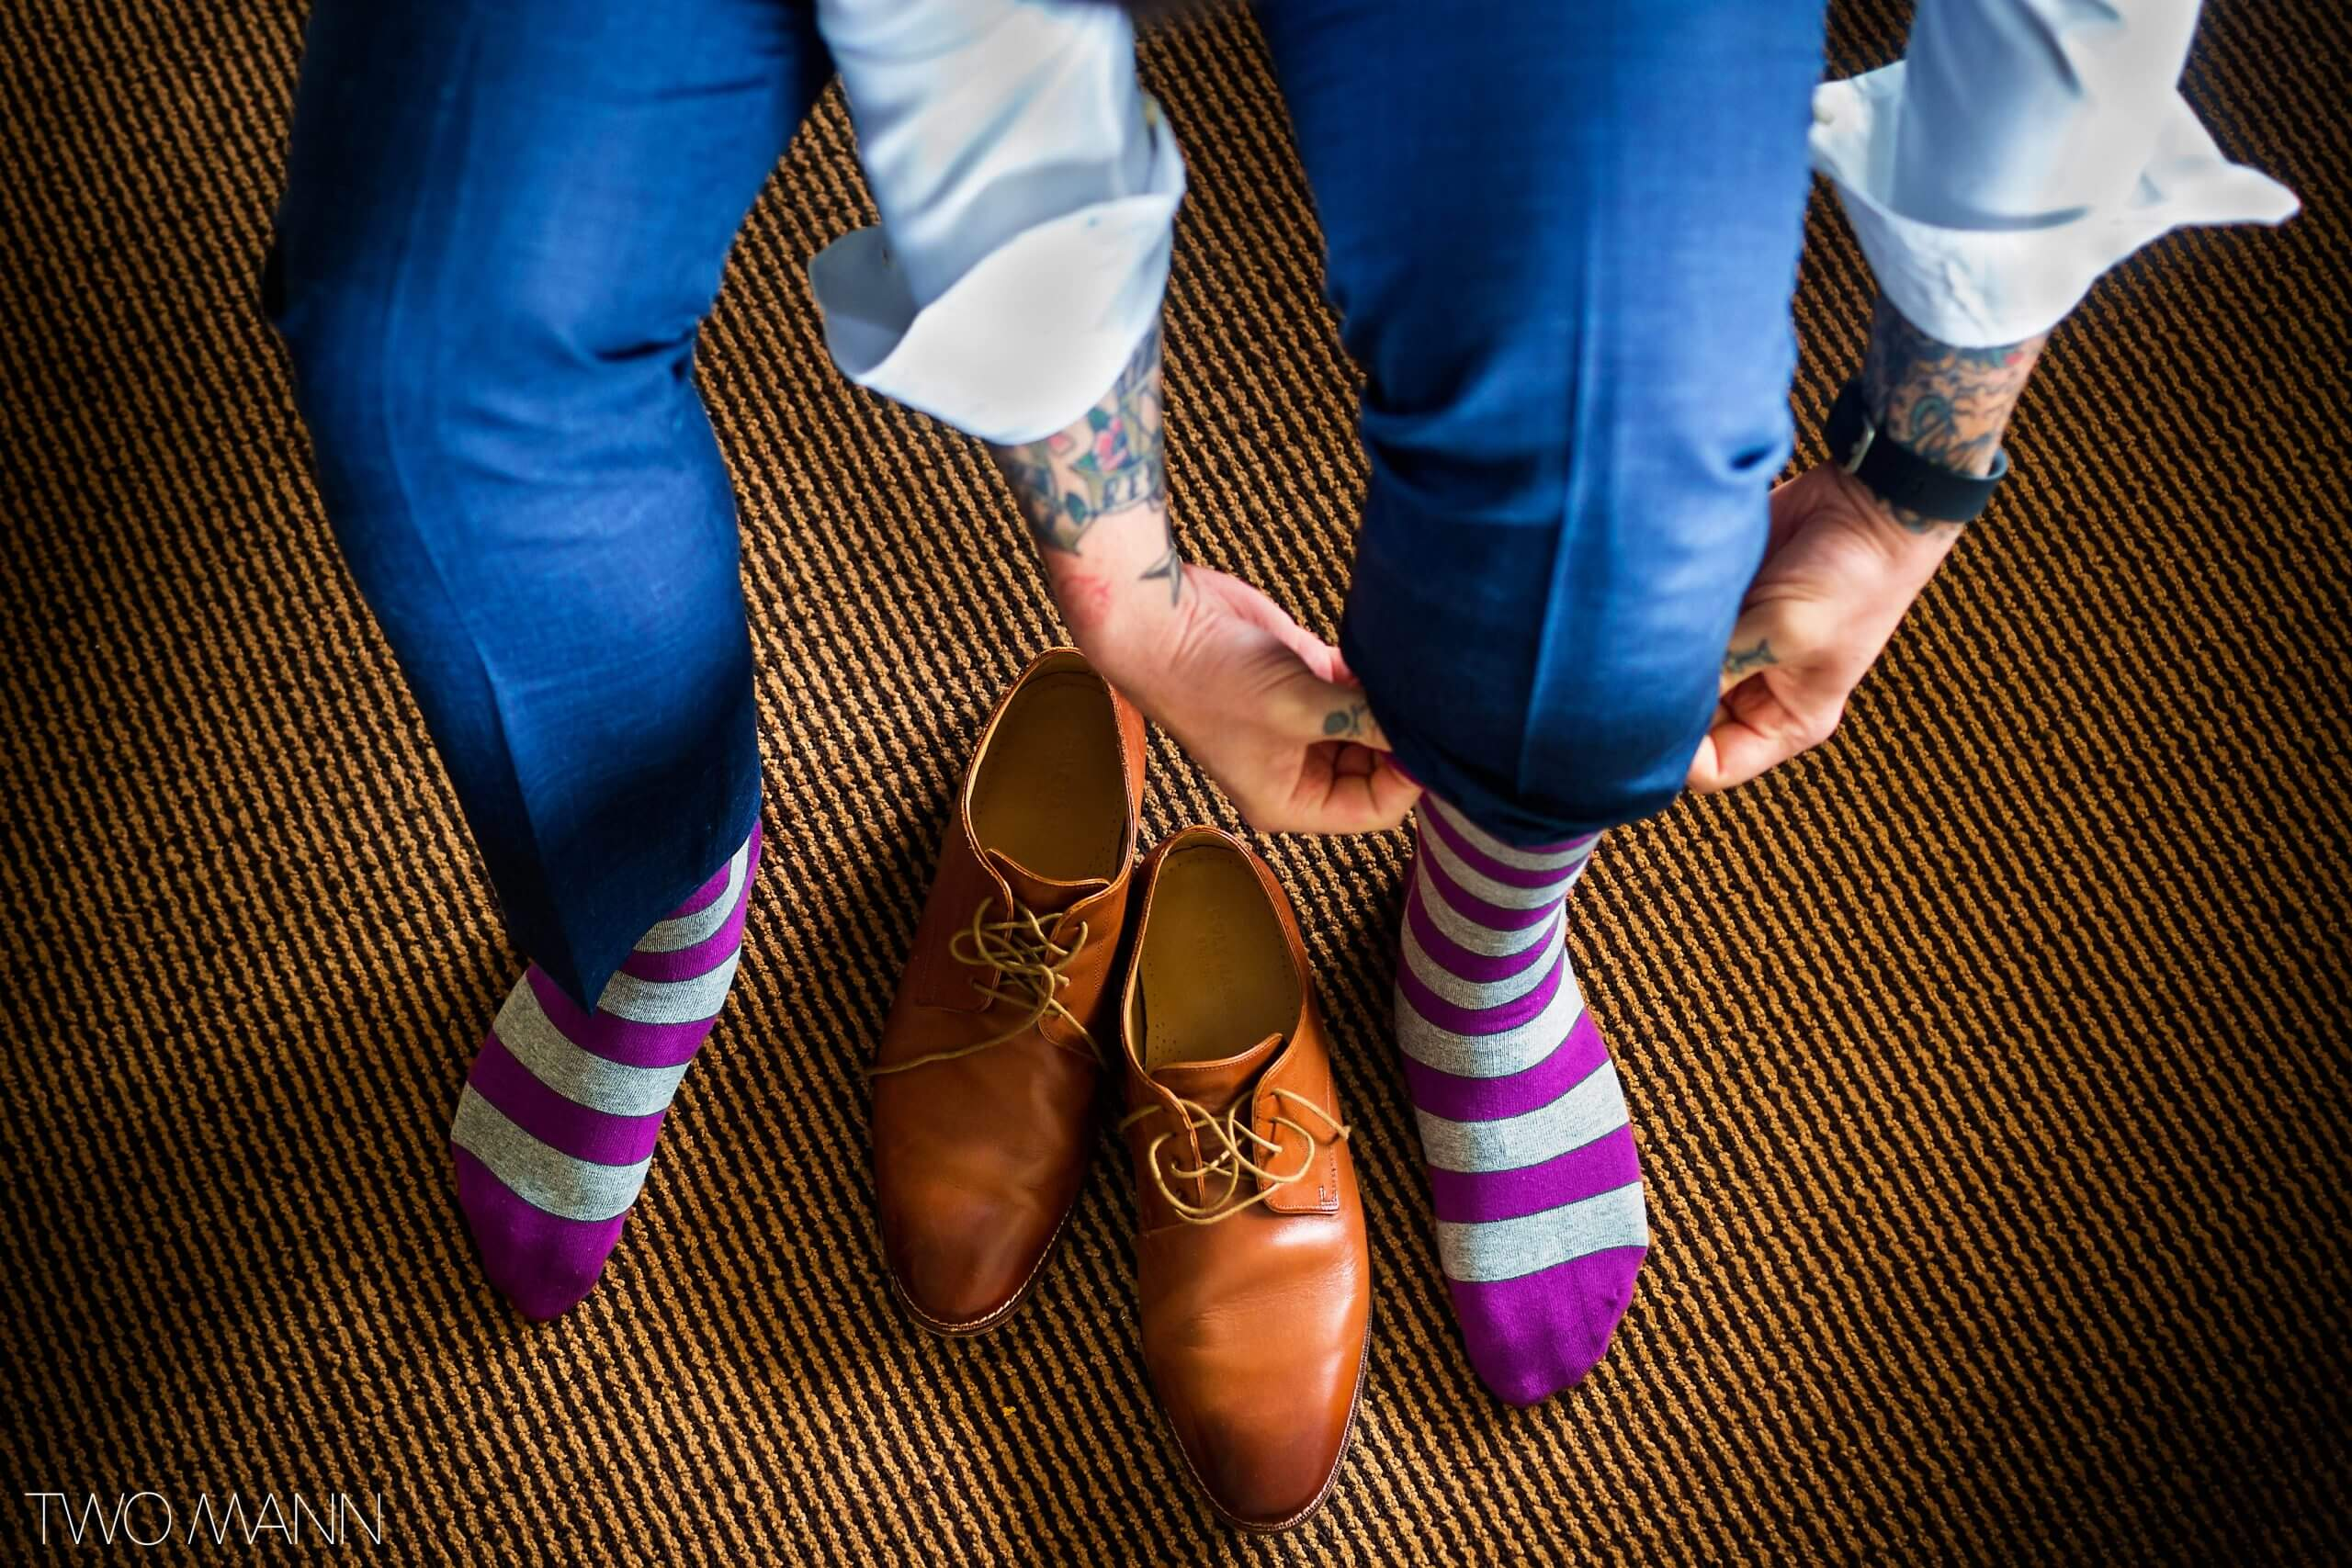 newlywed husband putting on socks before wedding ceremony